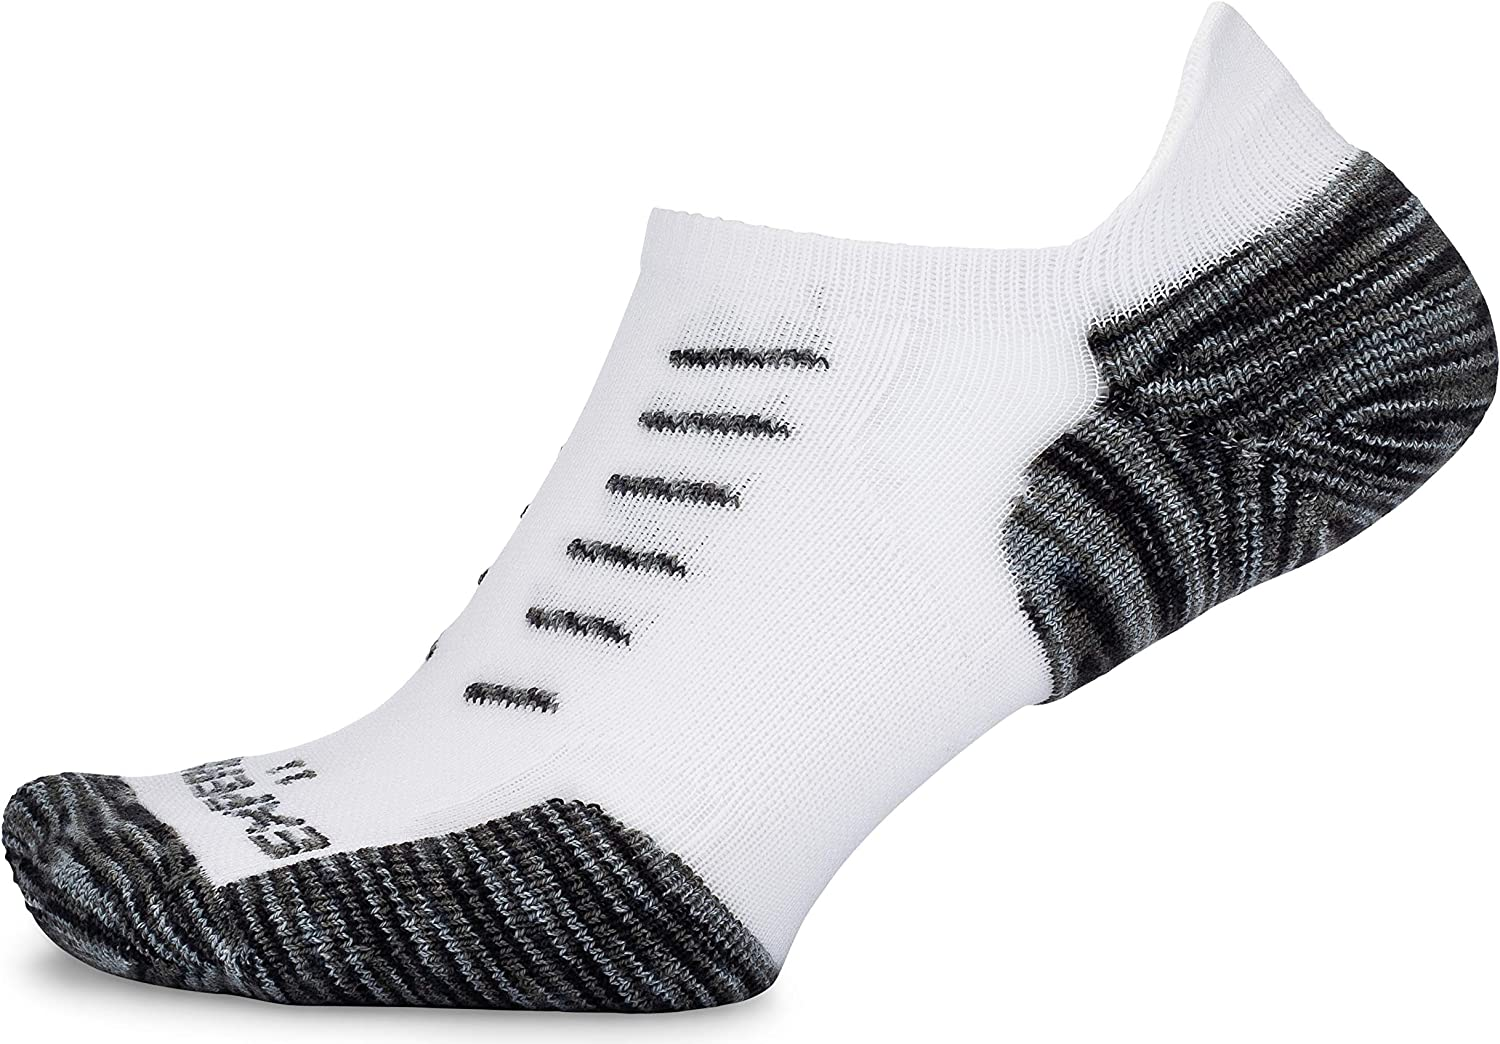 Thorlos Experia unisex-adult Xctu Thin Cushion Running No Show Socks